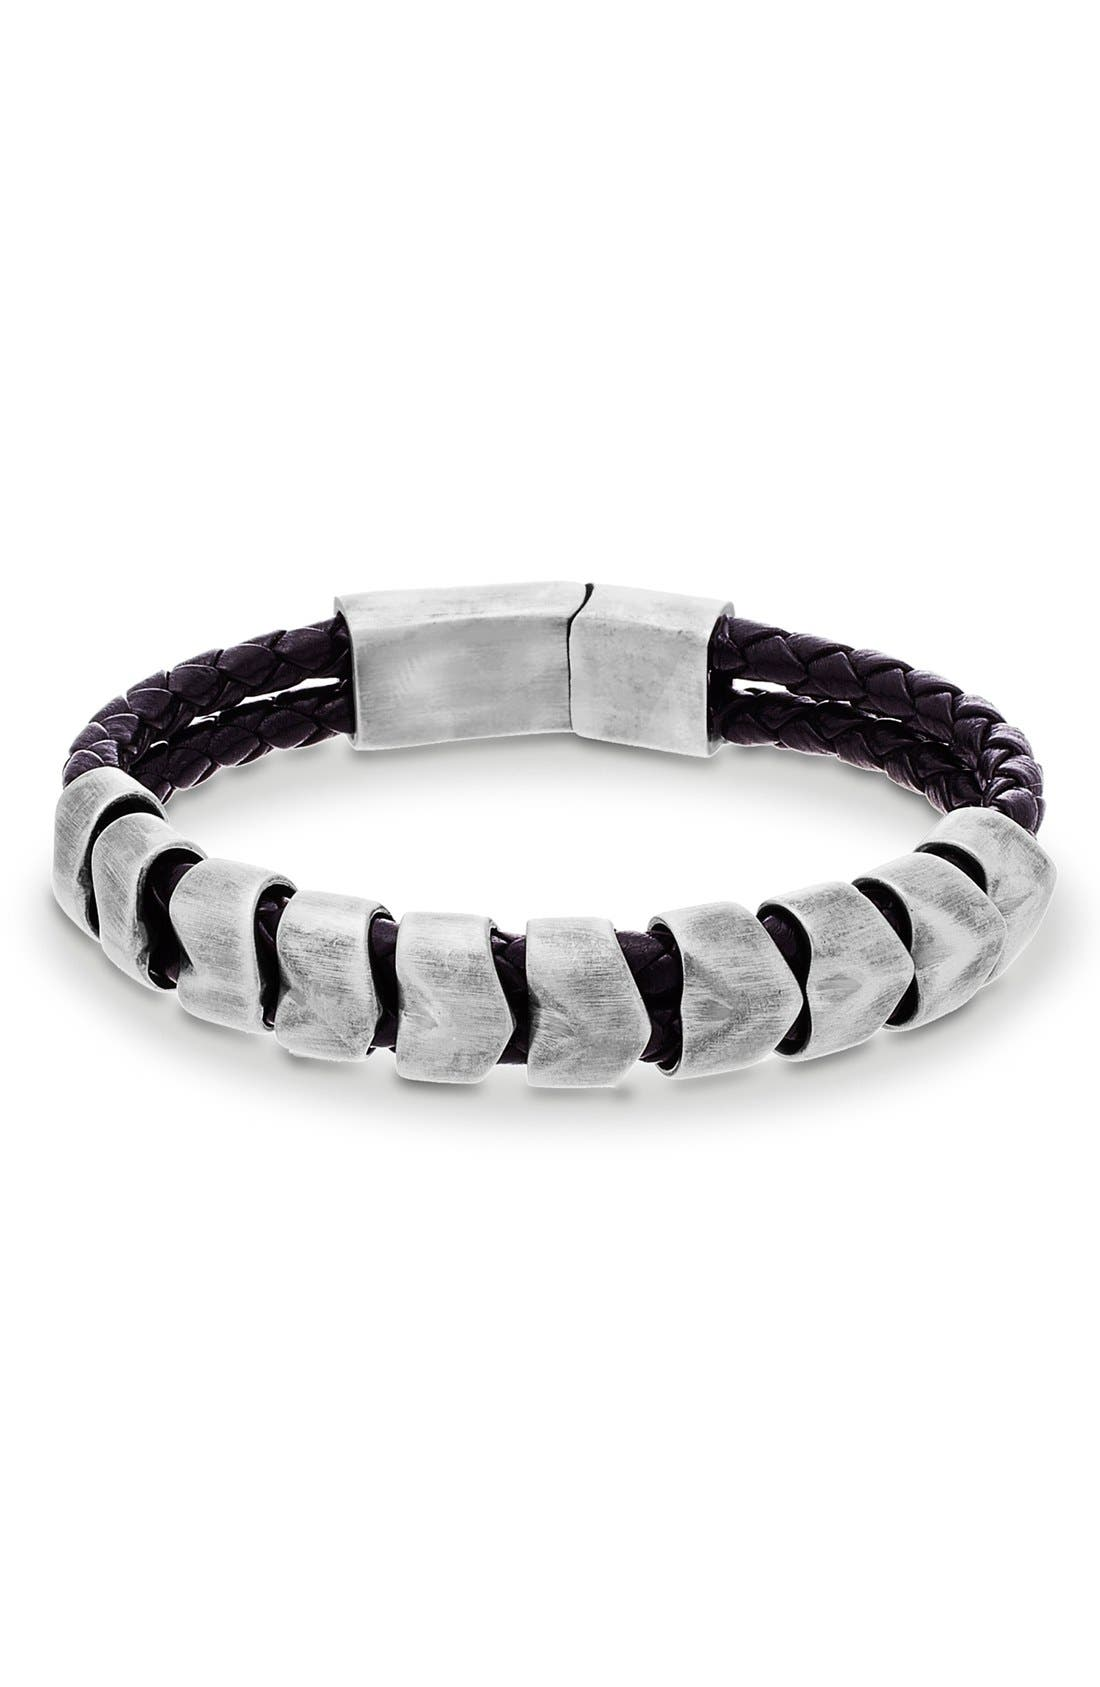 'Braided Scale' Leather & Metal Bracelet,                             Main thumbnail 1, color,                             040